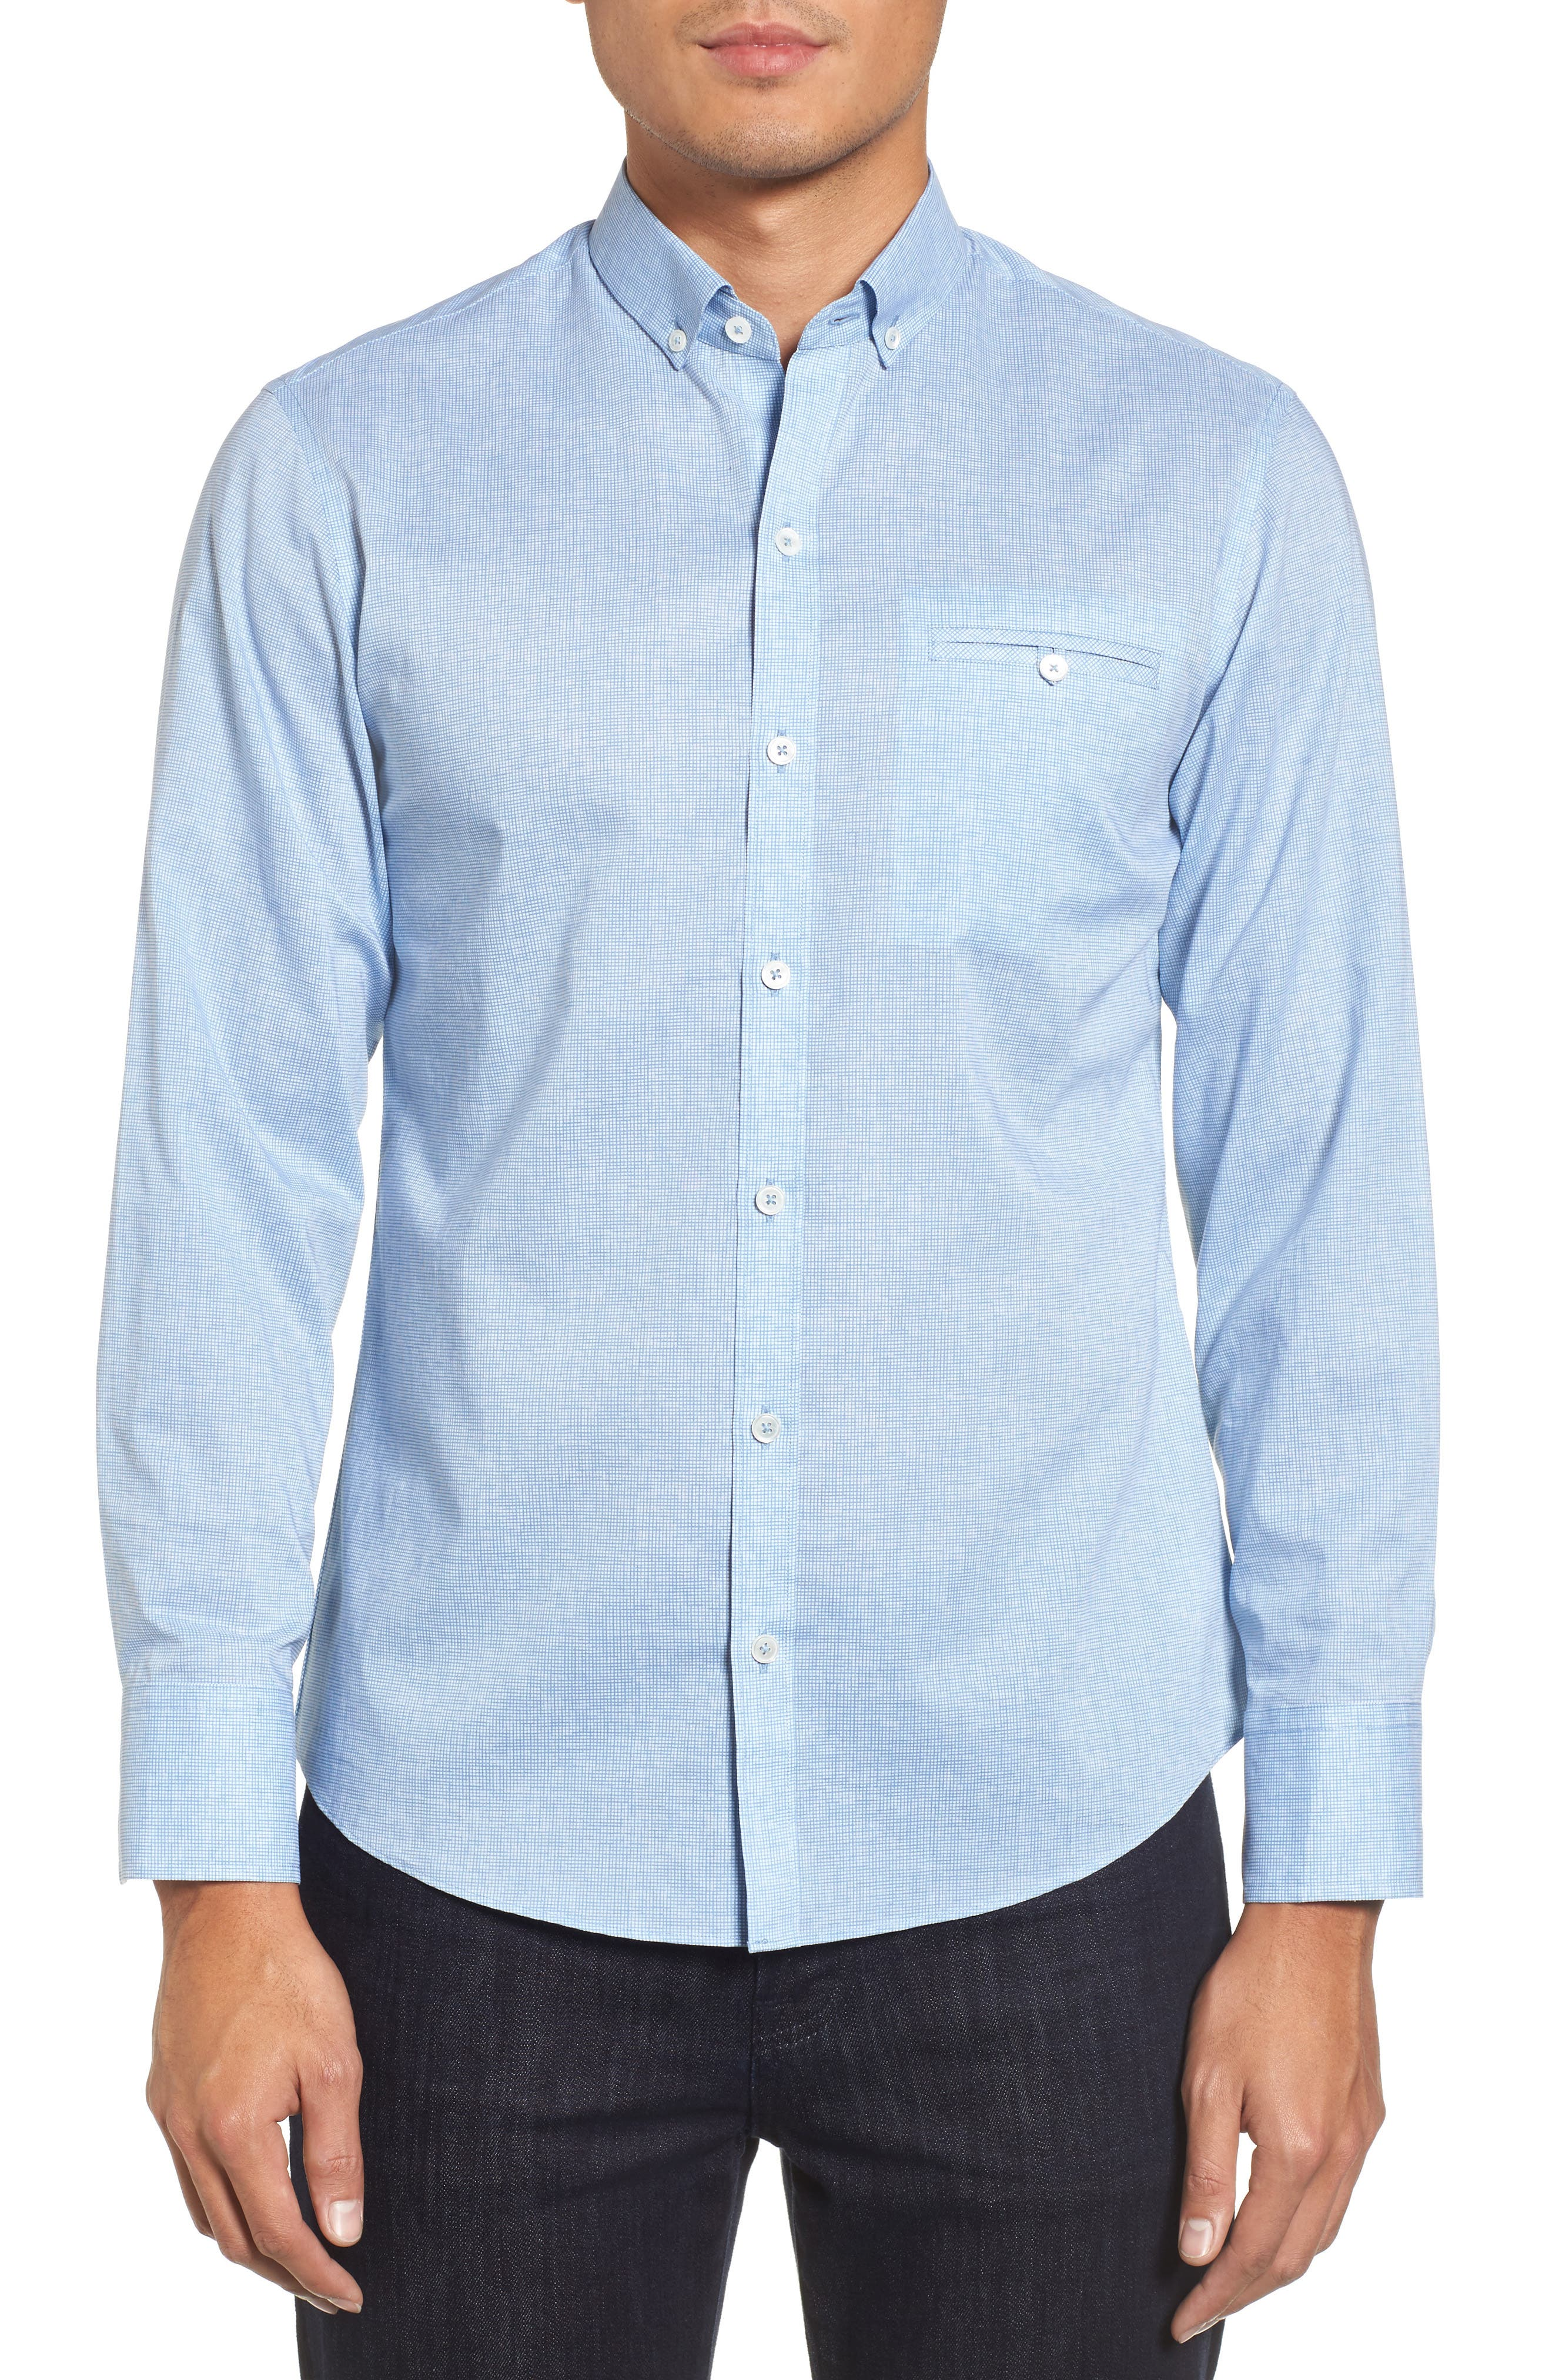 Main Image - Zachary Prell Forrest Textured Woven Sport Shirt